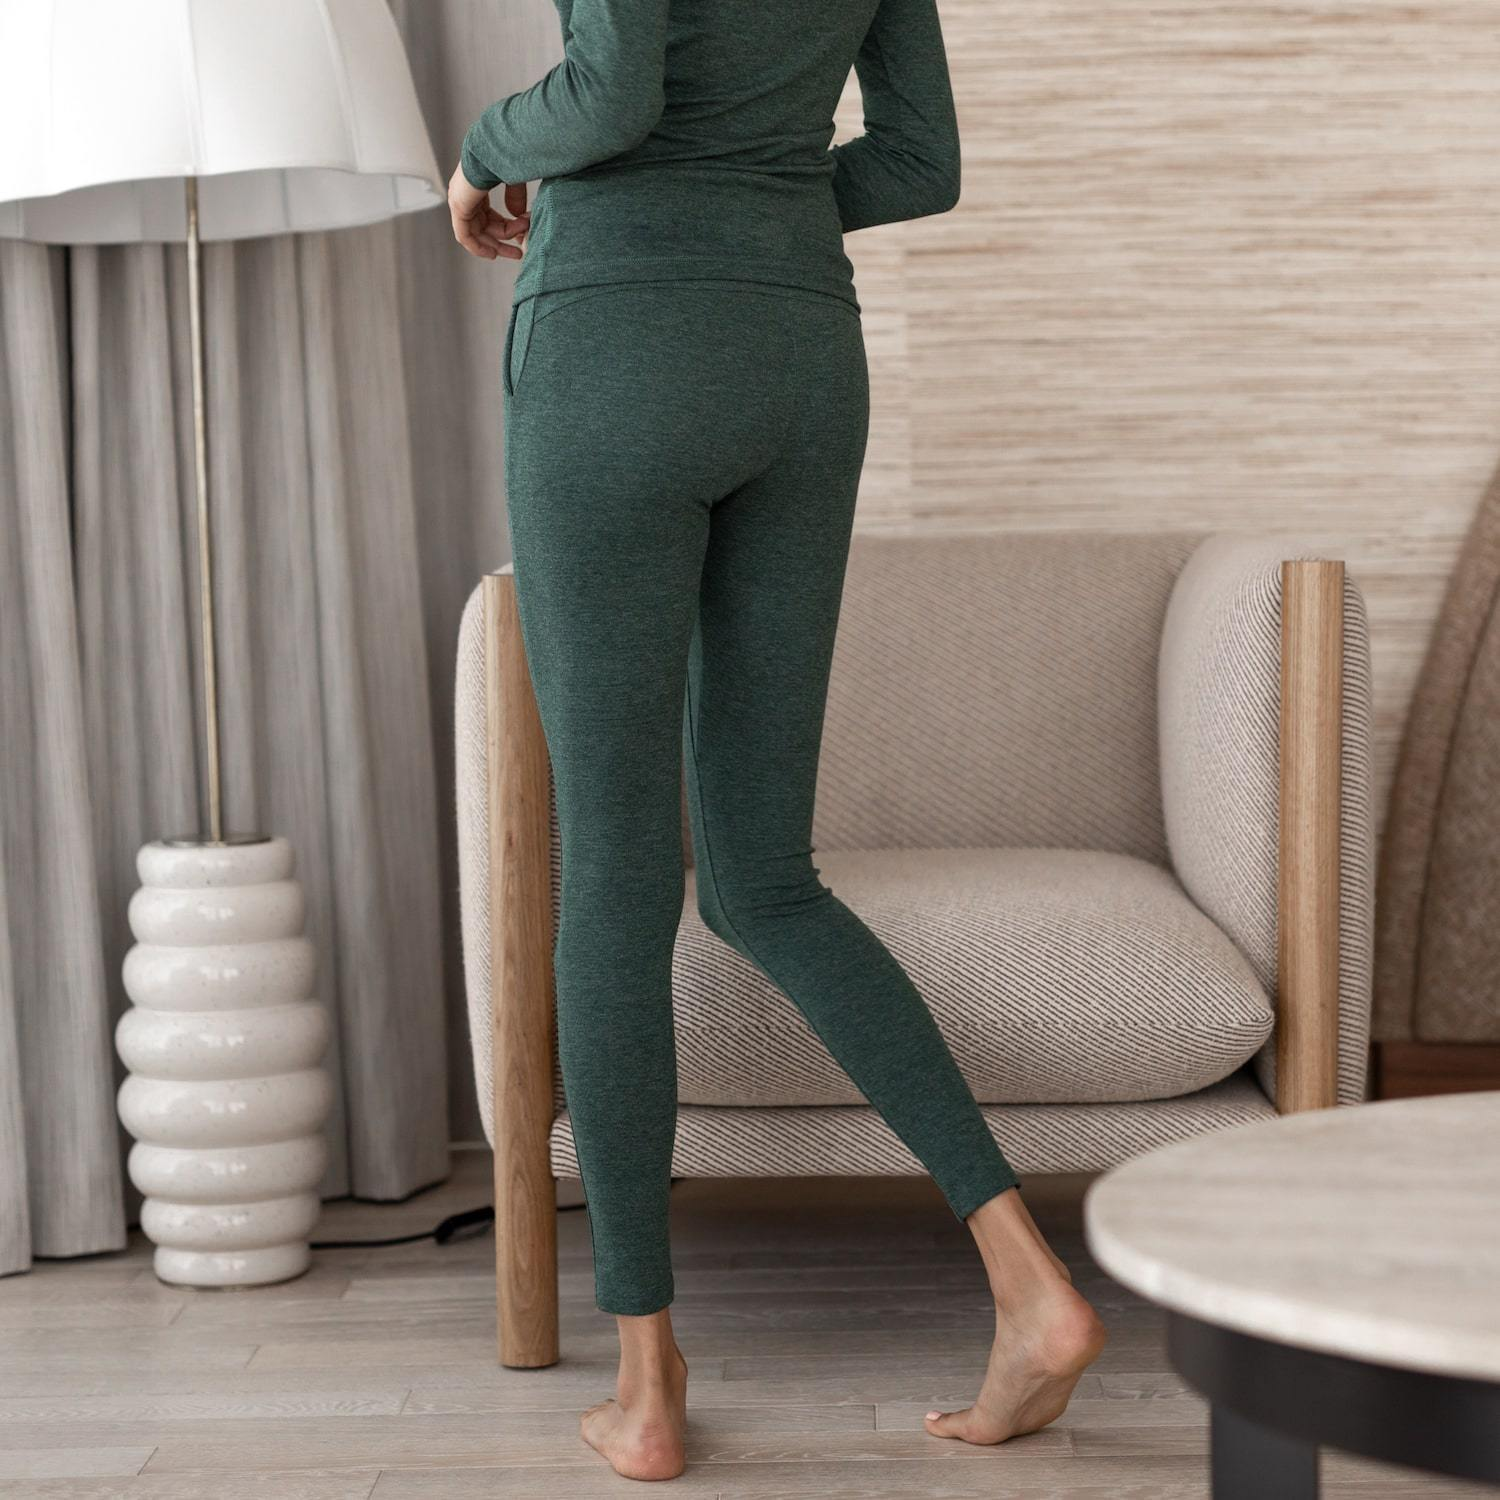 Lunya Sleepwear Restore Pima Pocket Legging - #Emerald